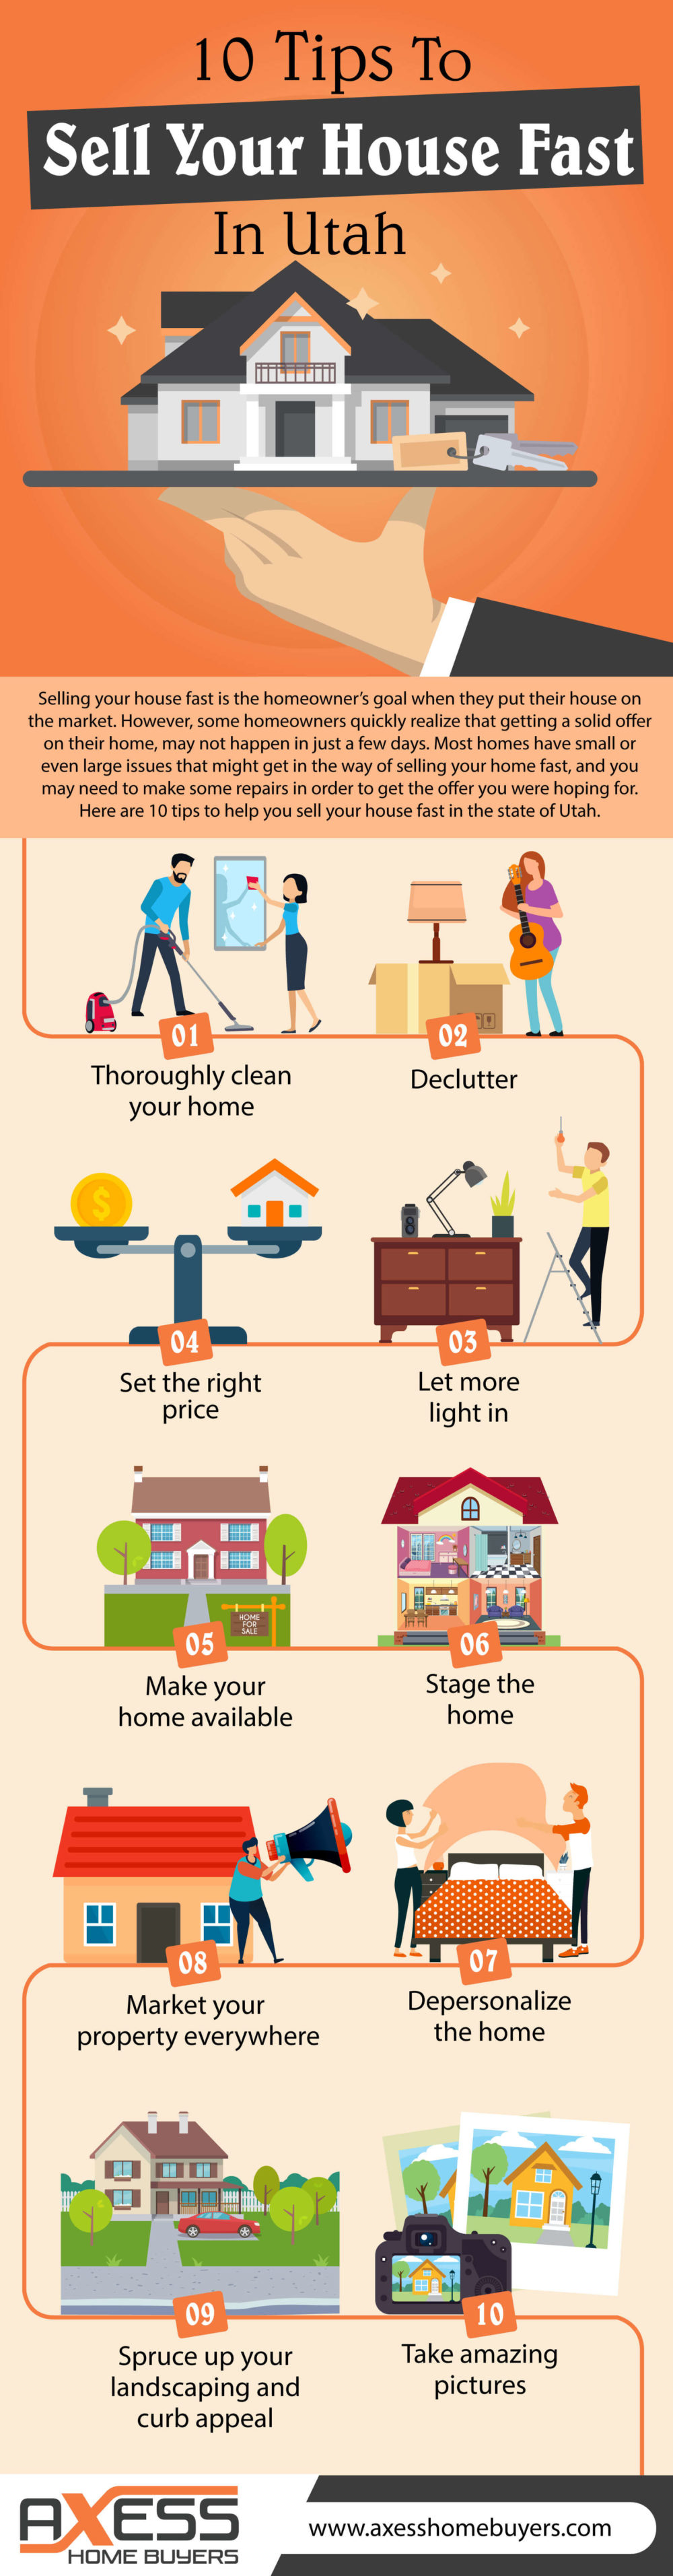 10 Tips To Sell Your House Fast In Utah